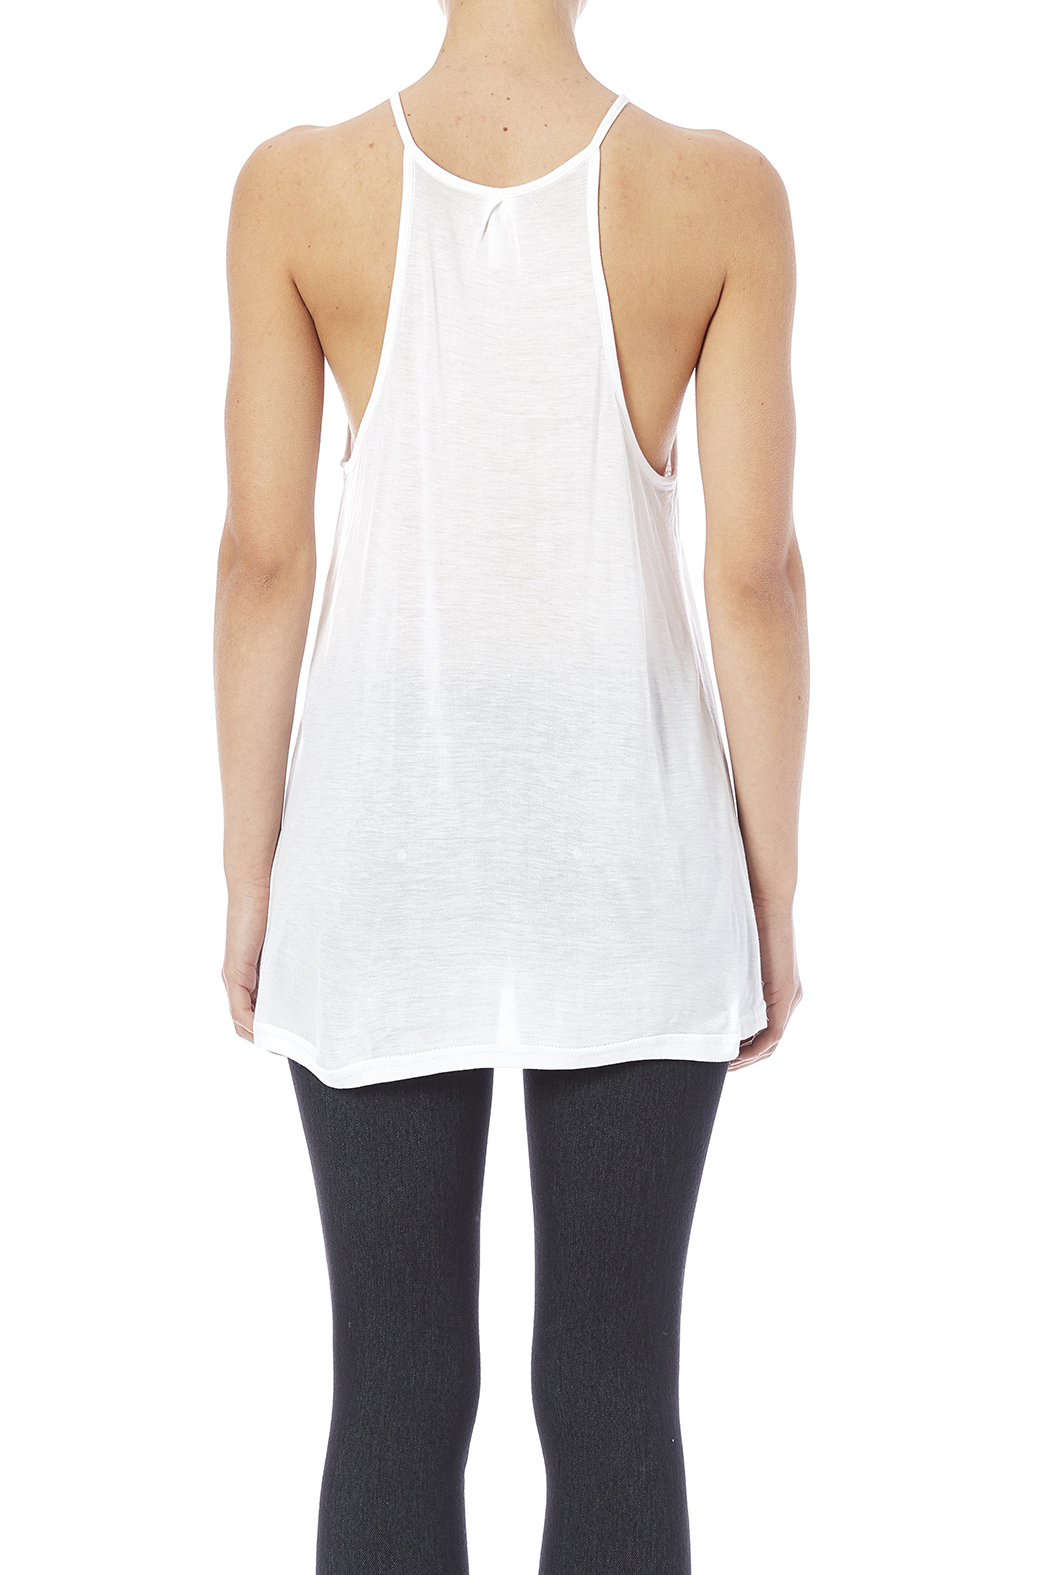 Daisy's Fashions Bamboo Tank - Back Cropped Image